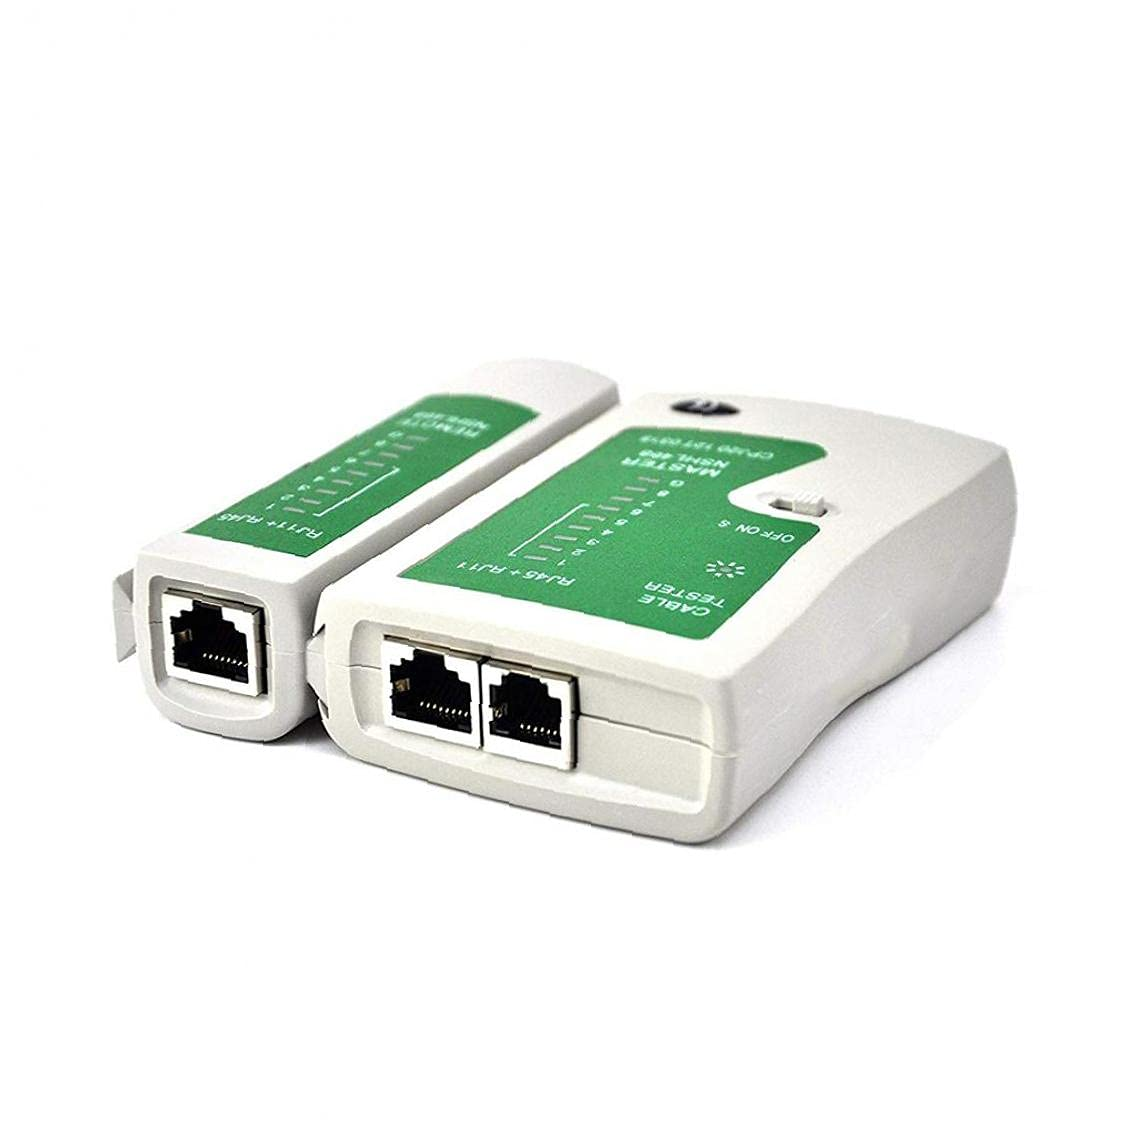 Network Cable Tester LAN RJ45 RJ11 Line Louisville-Jefferson County Mall N21CL Max 89% OFF 5 Ethernet Cat Too